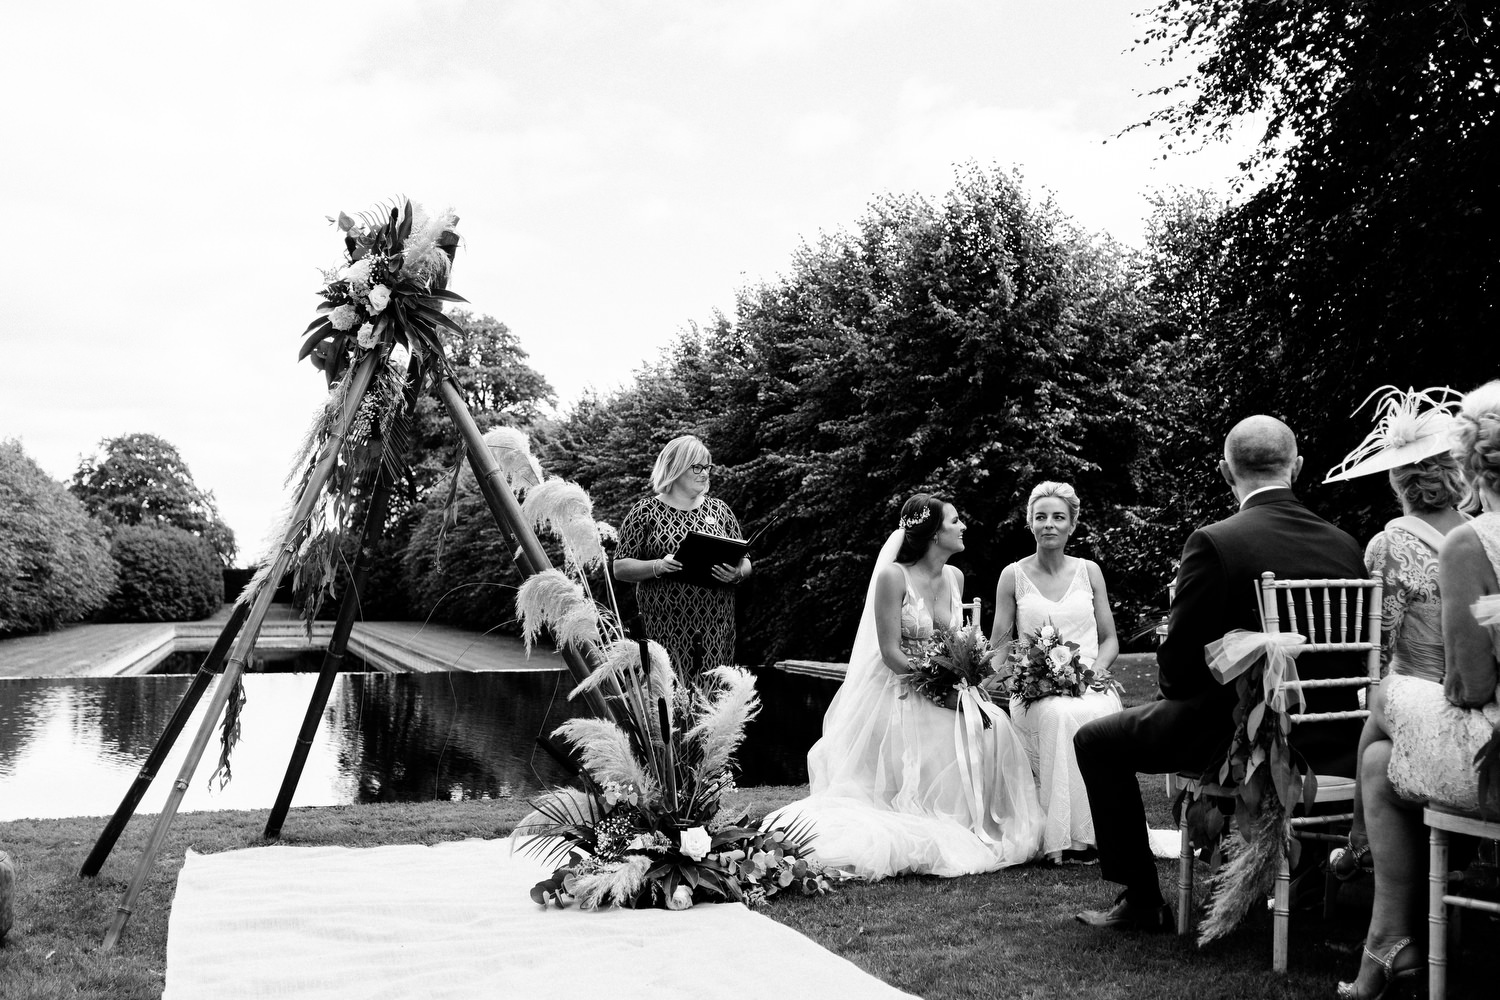 dmp0421_candid_brides_gay_ballintubbert_photography_ireland_ceremony_laois_documentary_outdoor_relaxed_twobrides_wedding_samesex_house_fun